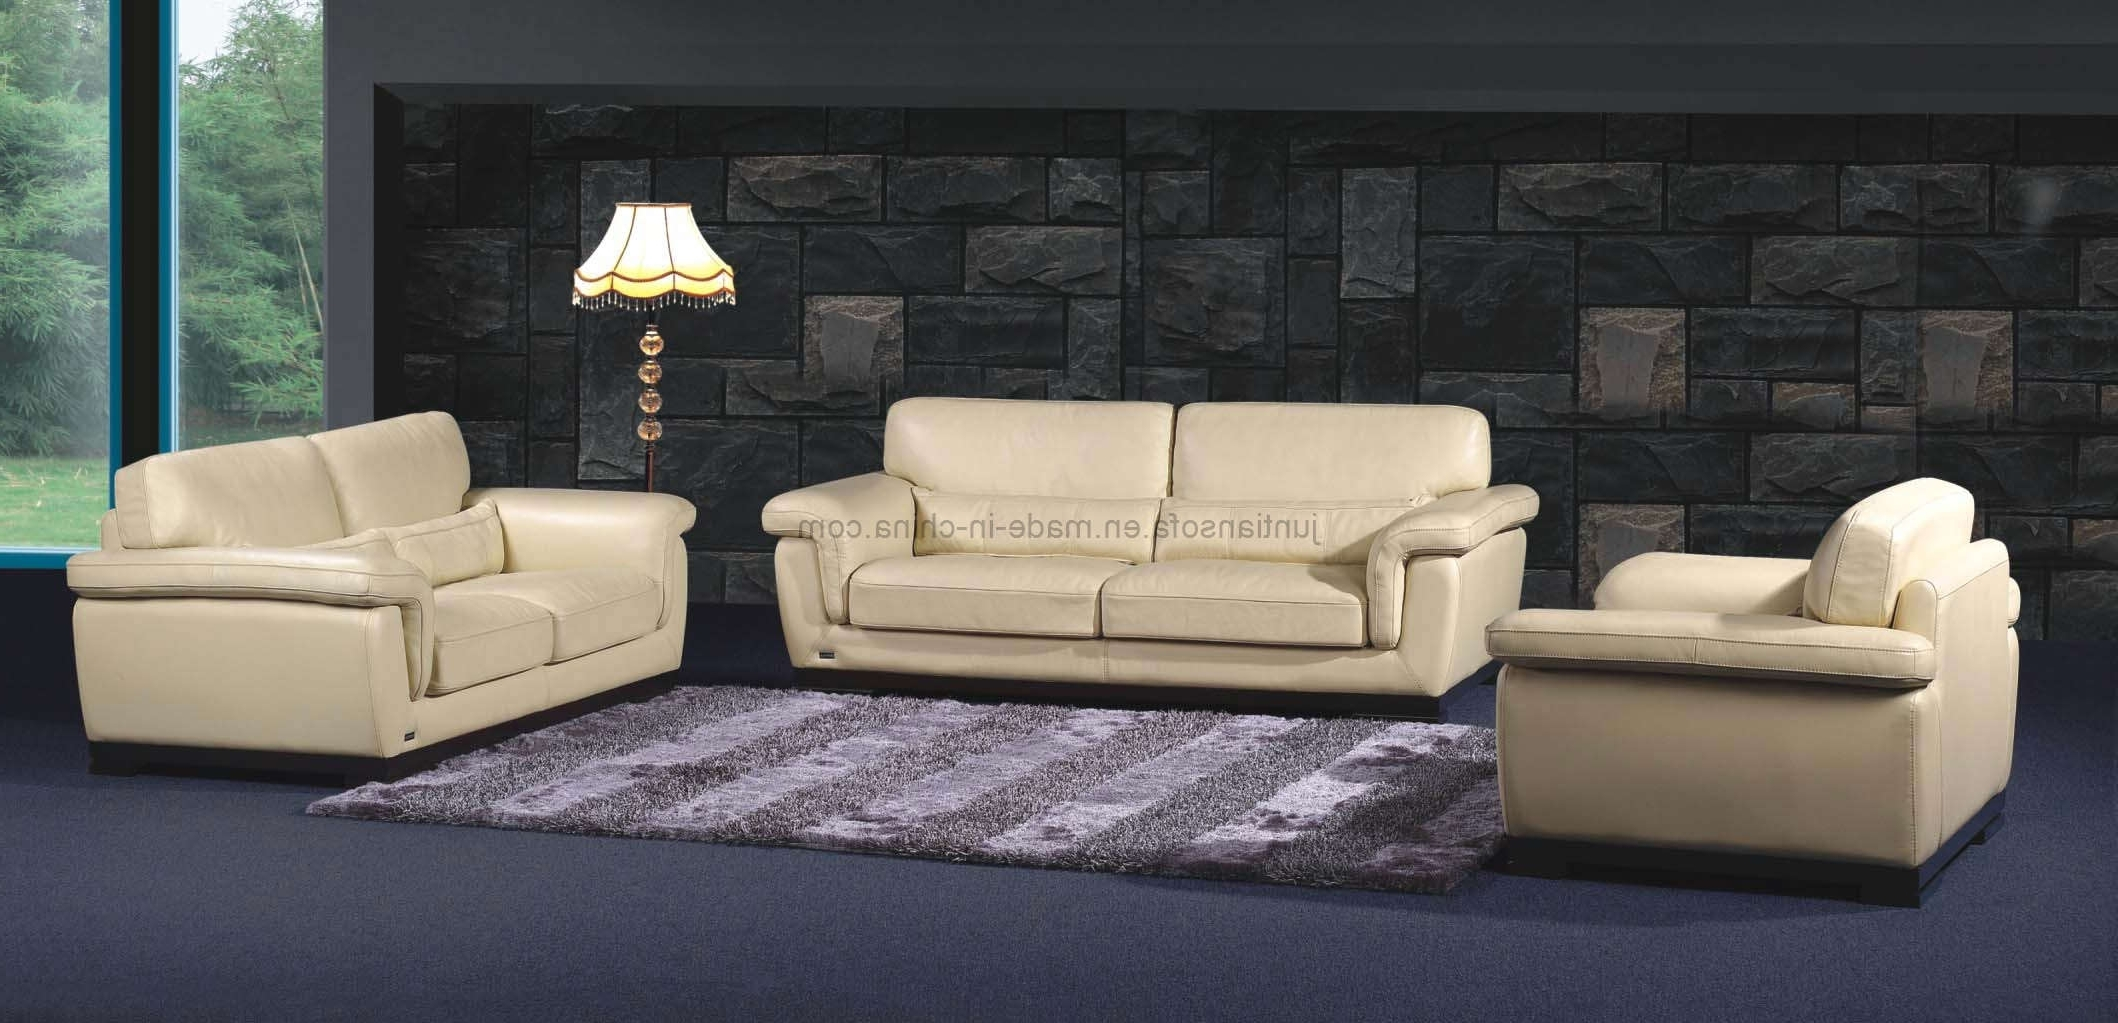 Lovely High Quality Sectional Sofa 30 For Sofa Room Ideas With Within Well Liked High Quality Sectional Sofas (View 2 of 20)